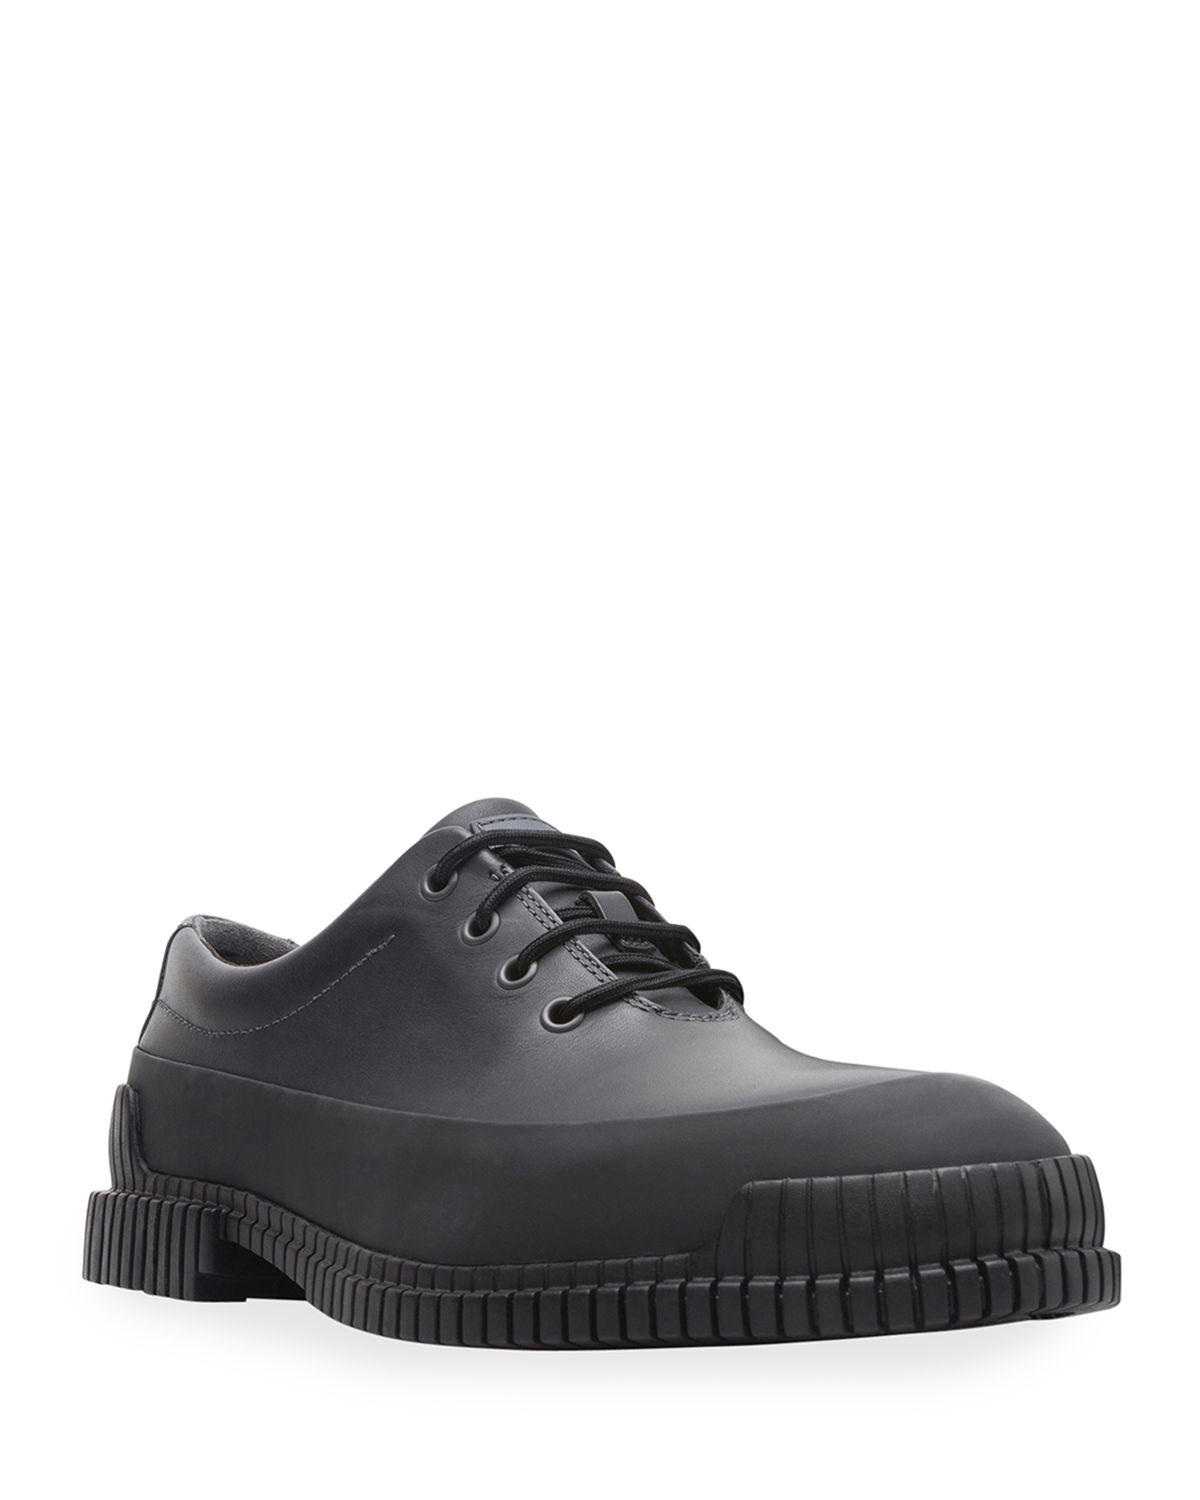 Men's Pix Lightweight Two-Tone Leather Lace-Up Shoes